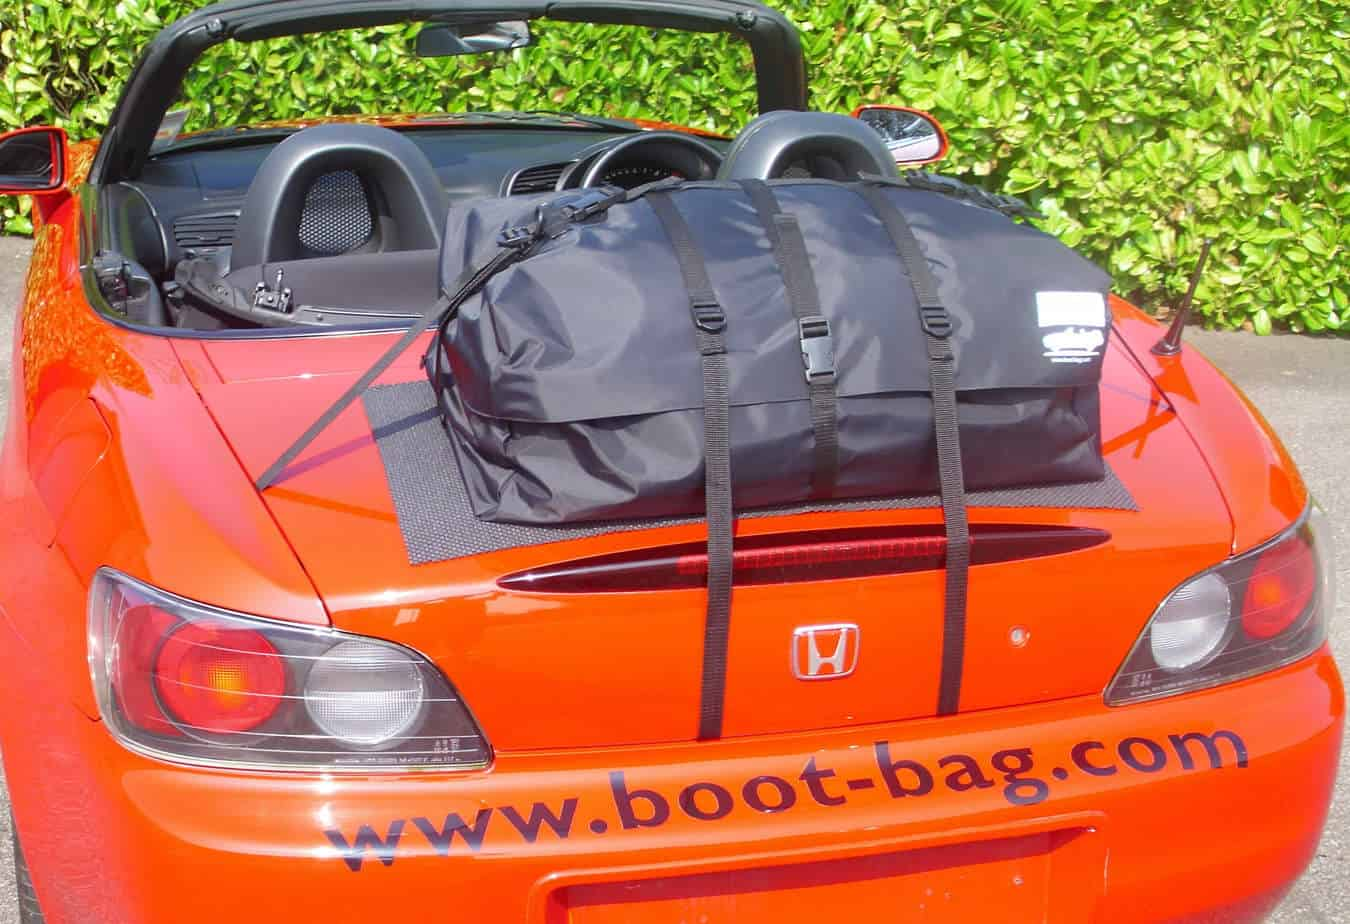 Bootbag Sports Car Boot Luggage Rack Attached To